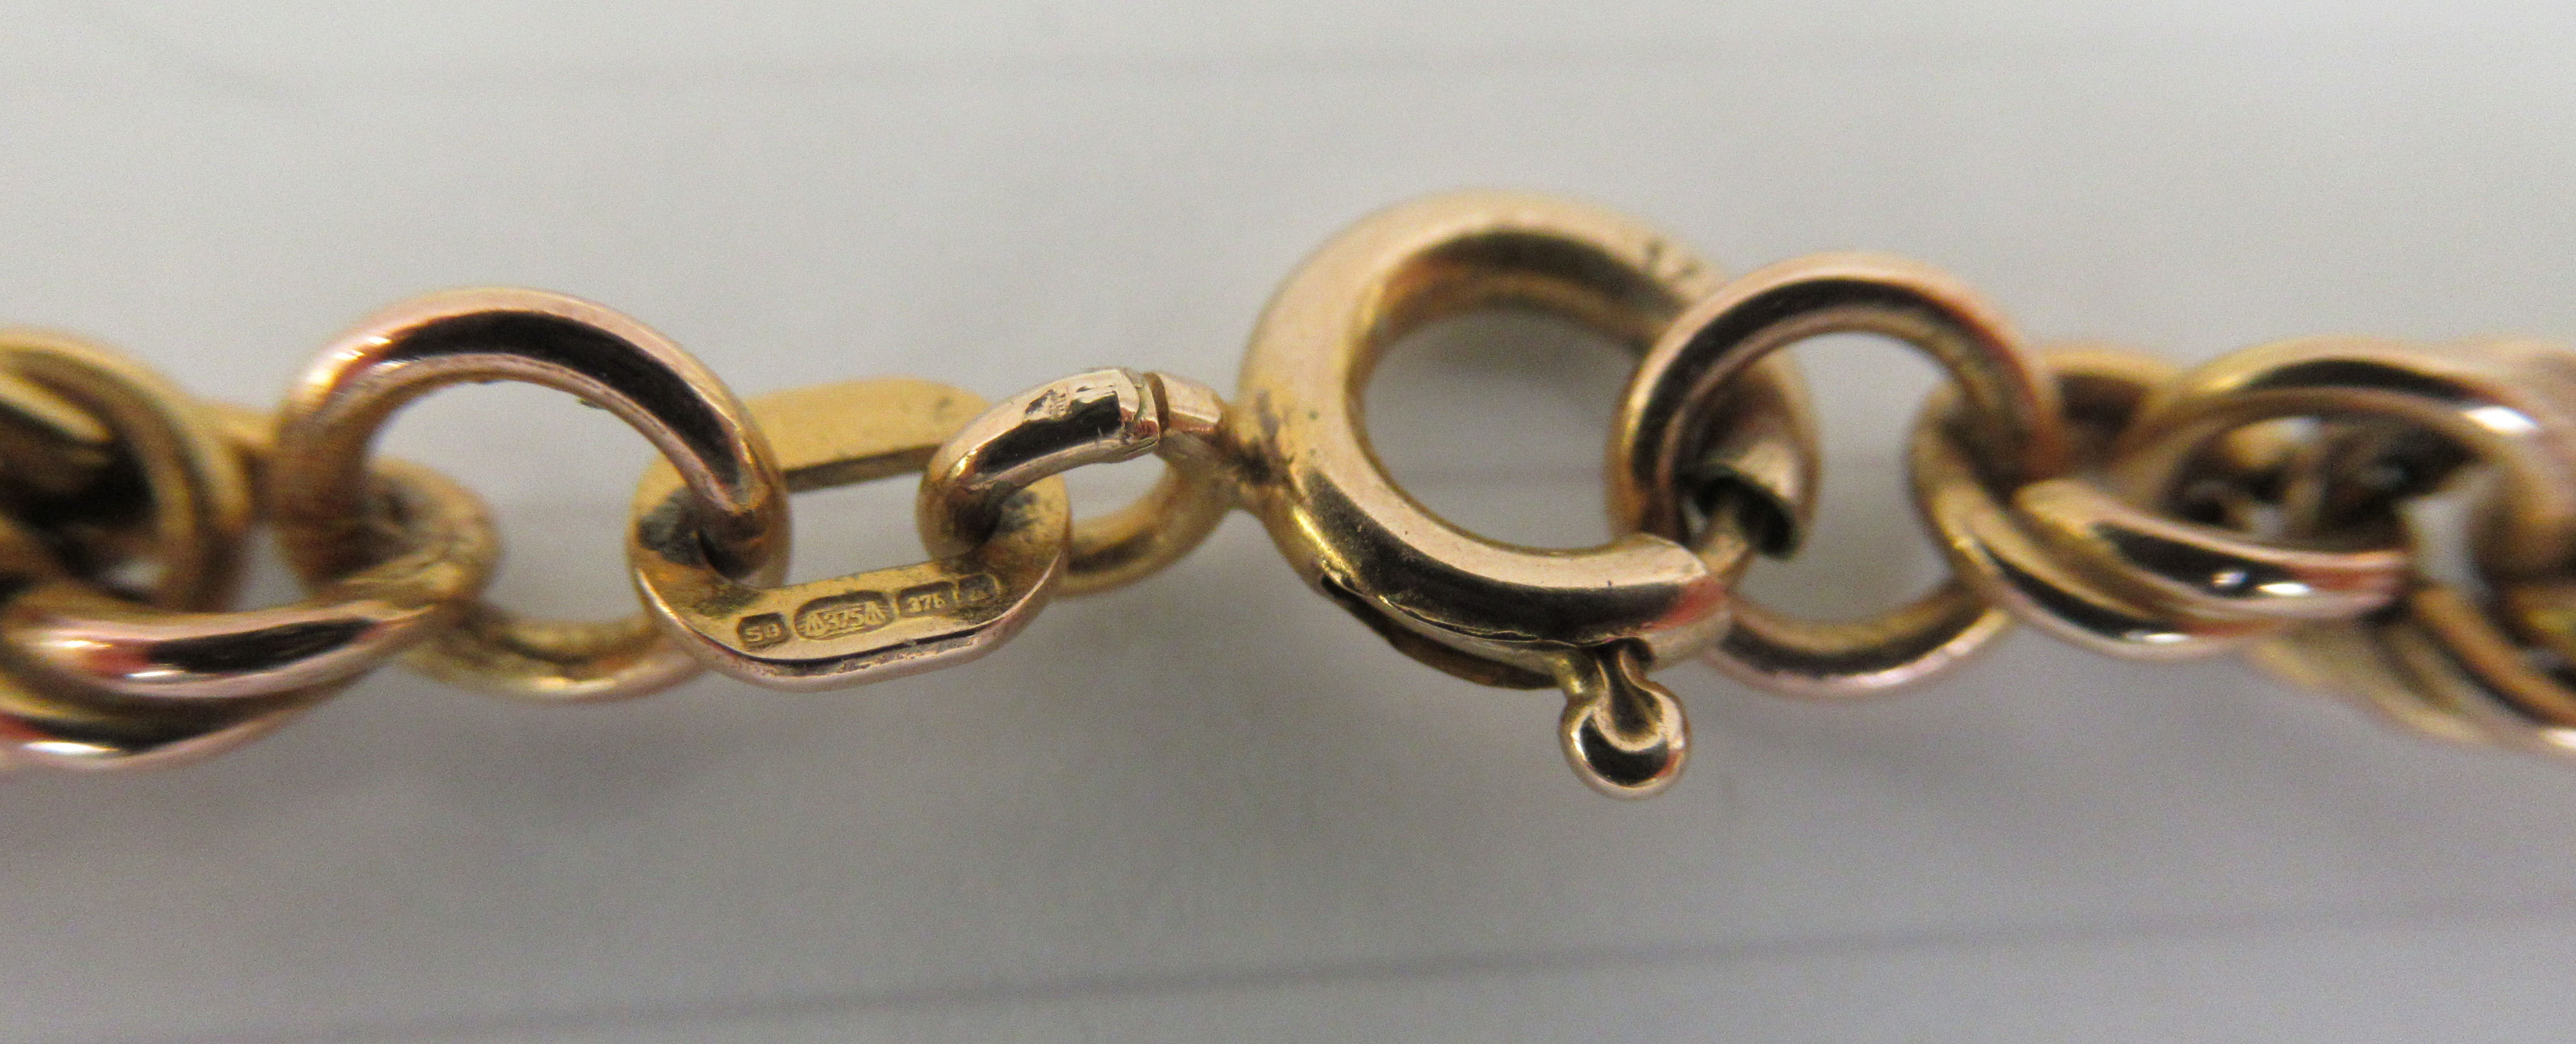 An Italian 9ct gold ropetwist design necklace - Image 3 of 3